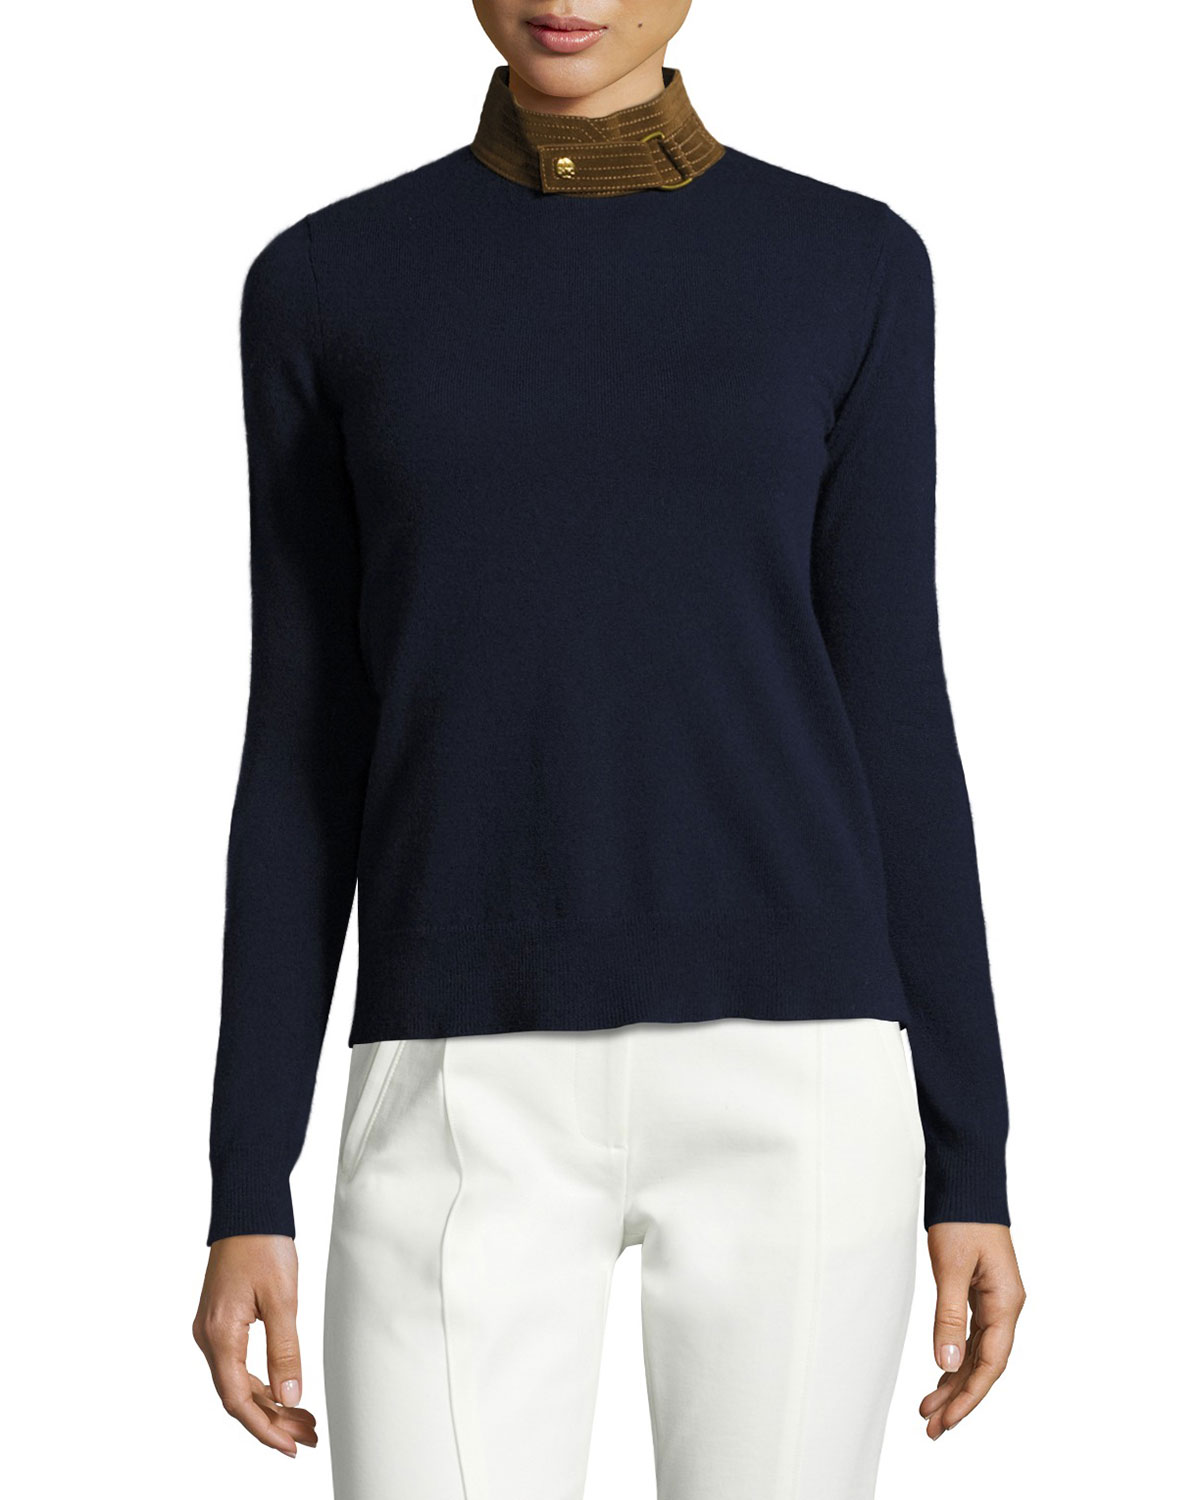 Flore Leather Stand-Collar Wool Sweater, Midnight Navy